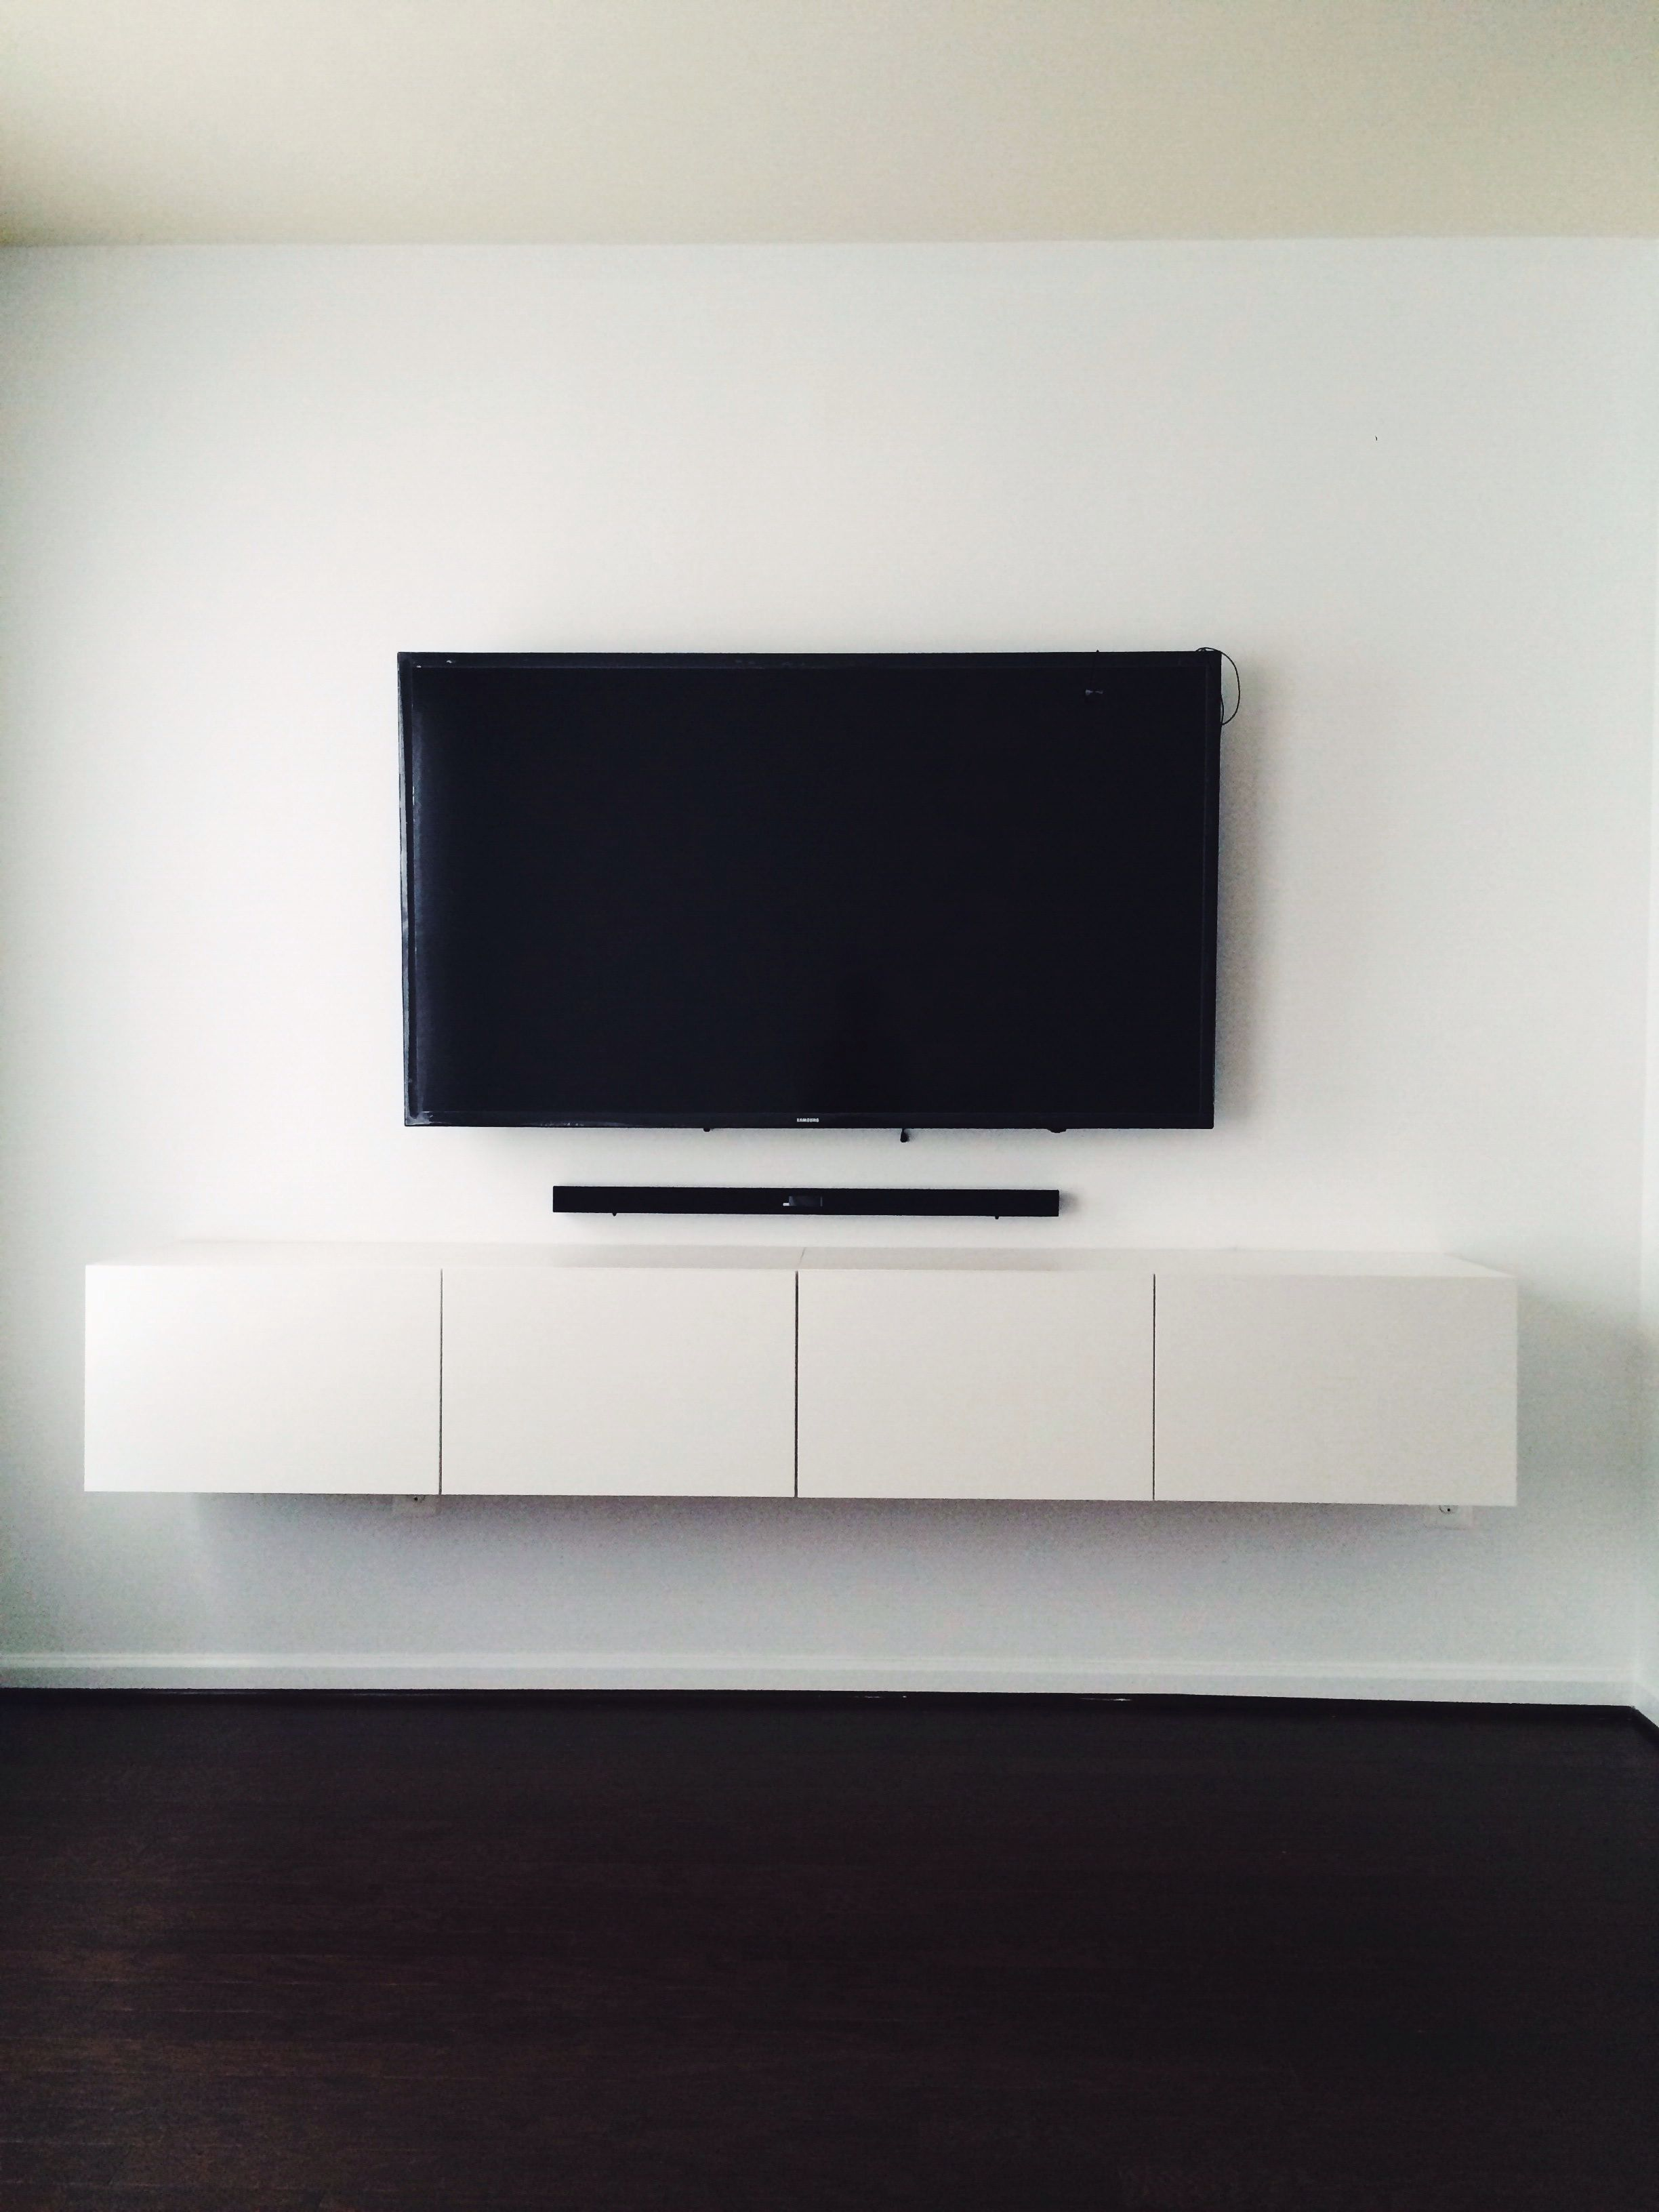 Hanging Media Console Ikea BestÅ Media Console Mounted Tv With Hidden Wires